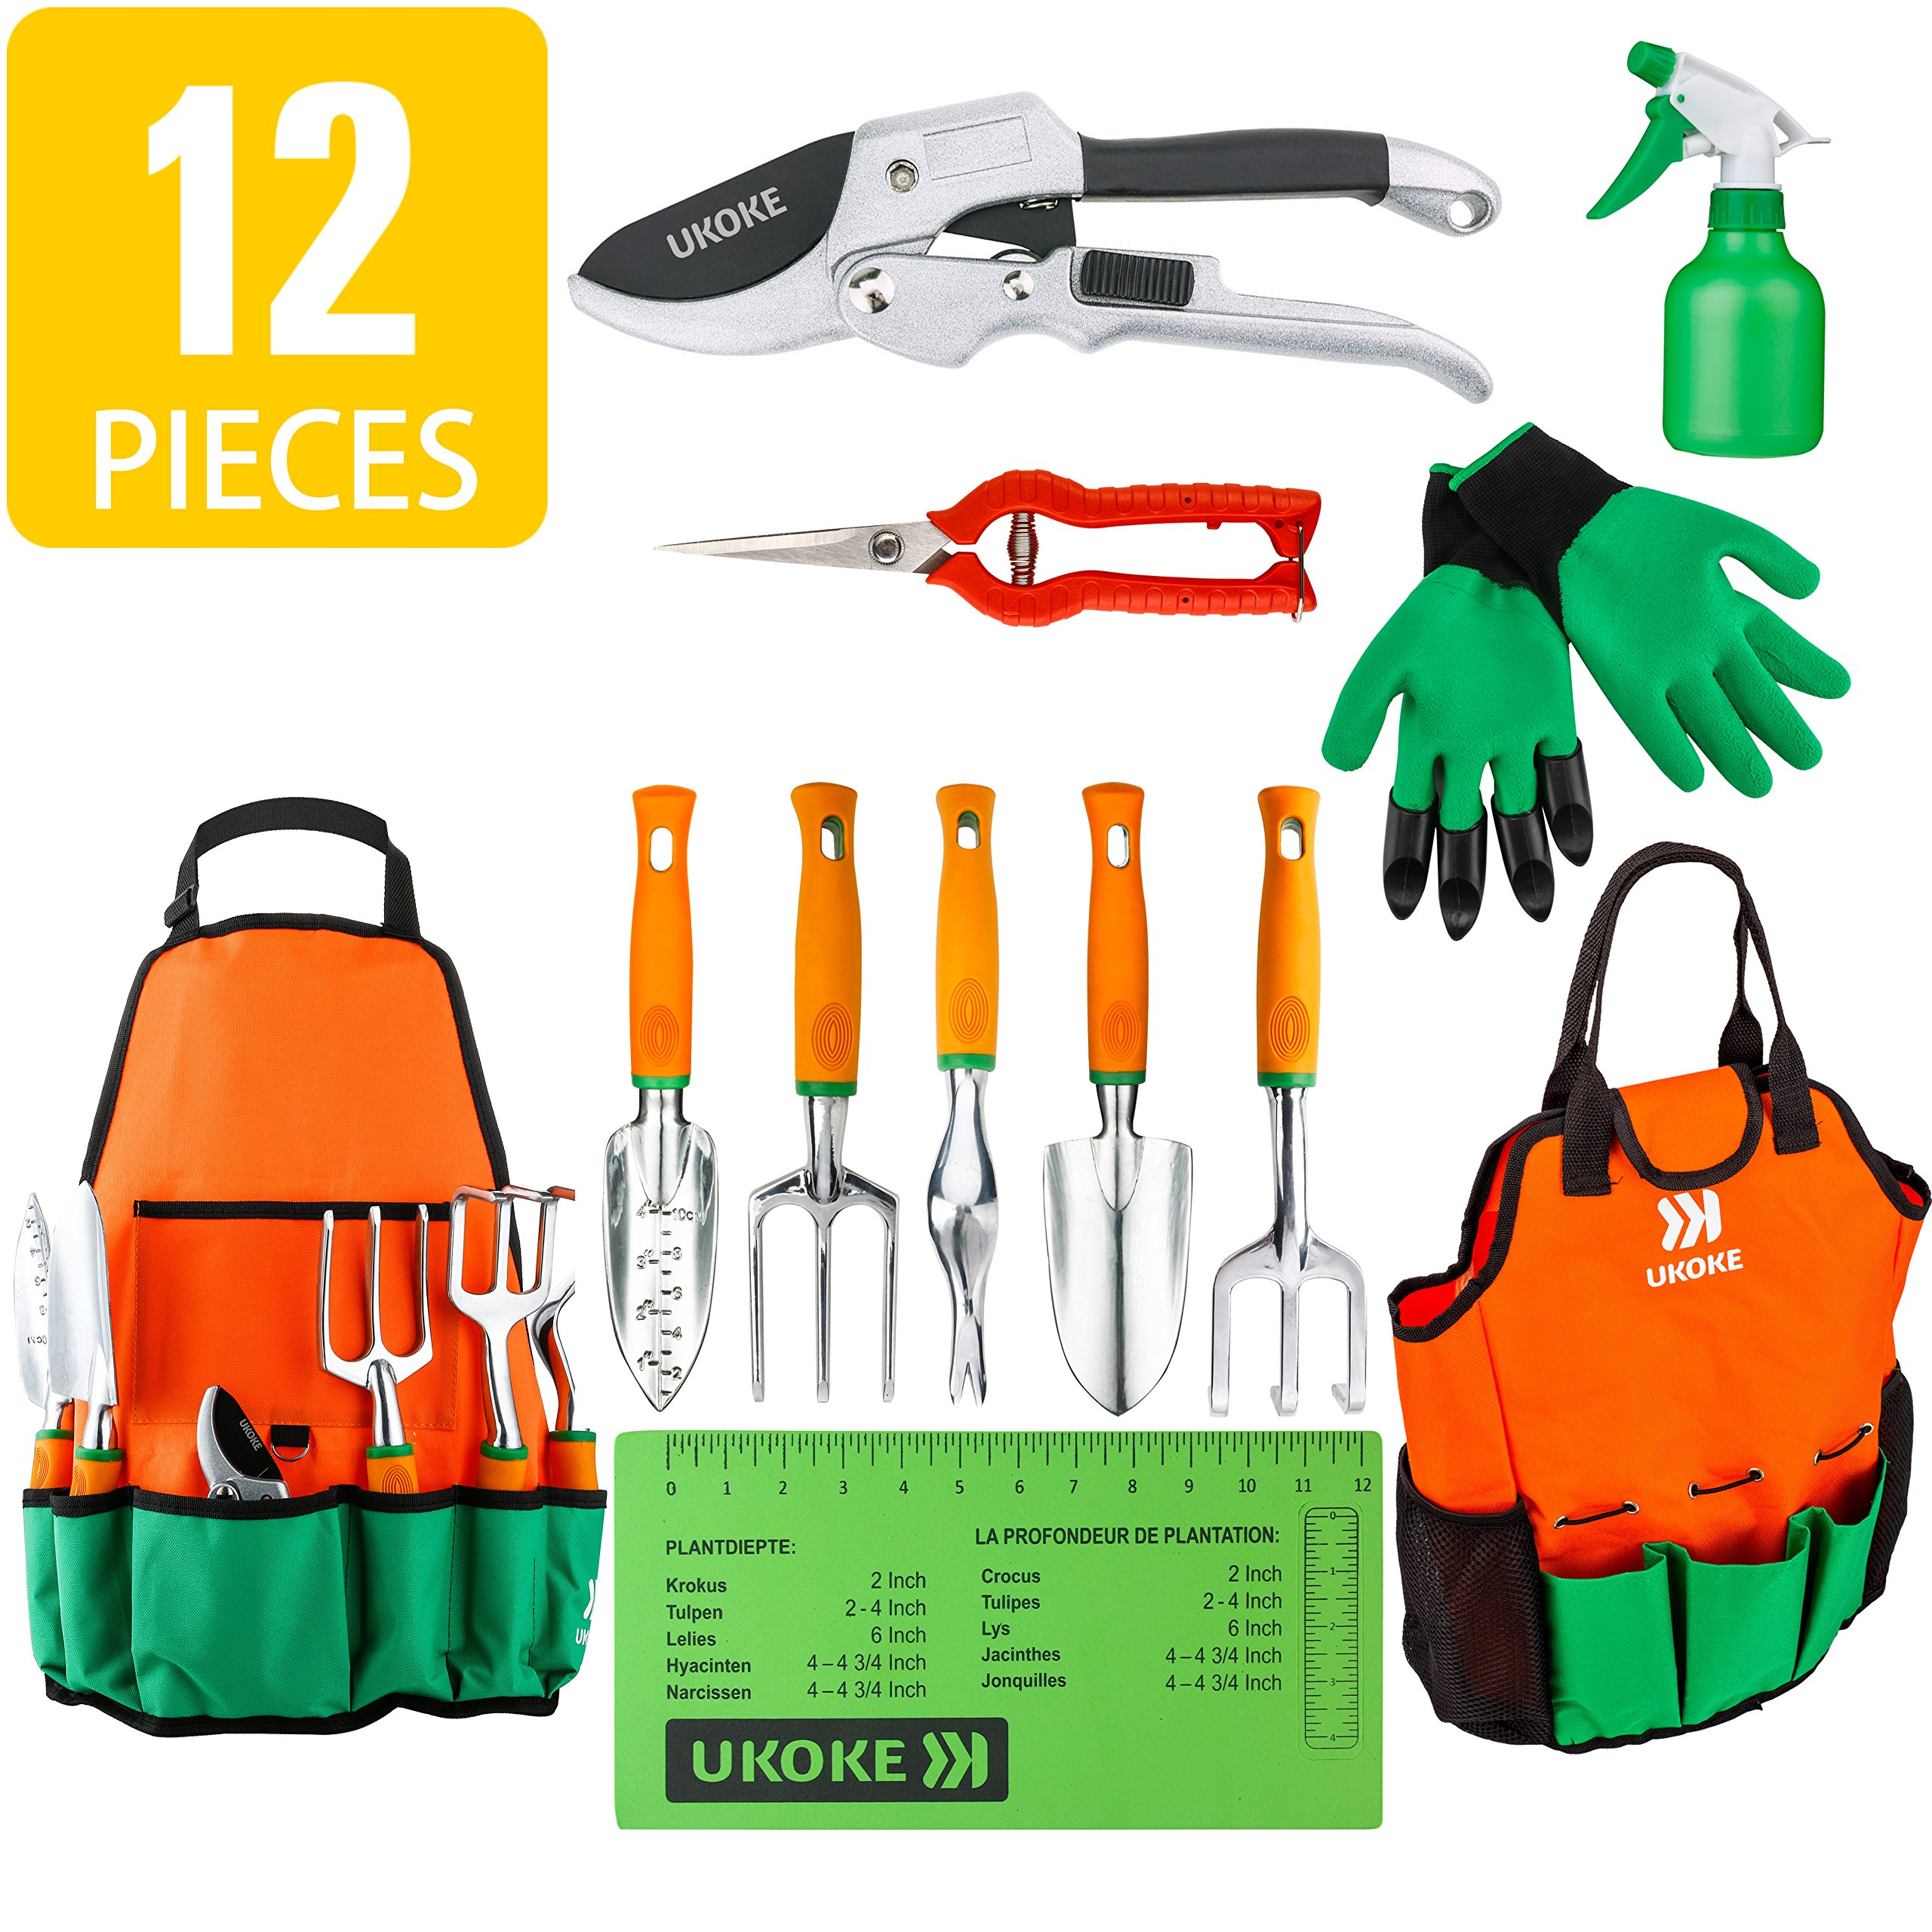 UKOKE Garden Tool Set, 12 Piece Aluminum Hand Tool Kit, Garden Canvas Apron with Storage Pocket, Outdoor Tool, Heavy Duty Gardening Work Set with Ergonomic Handle, Gardening Tools for women men by UKOKE